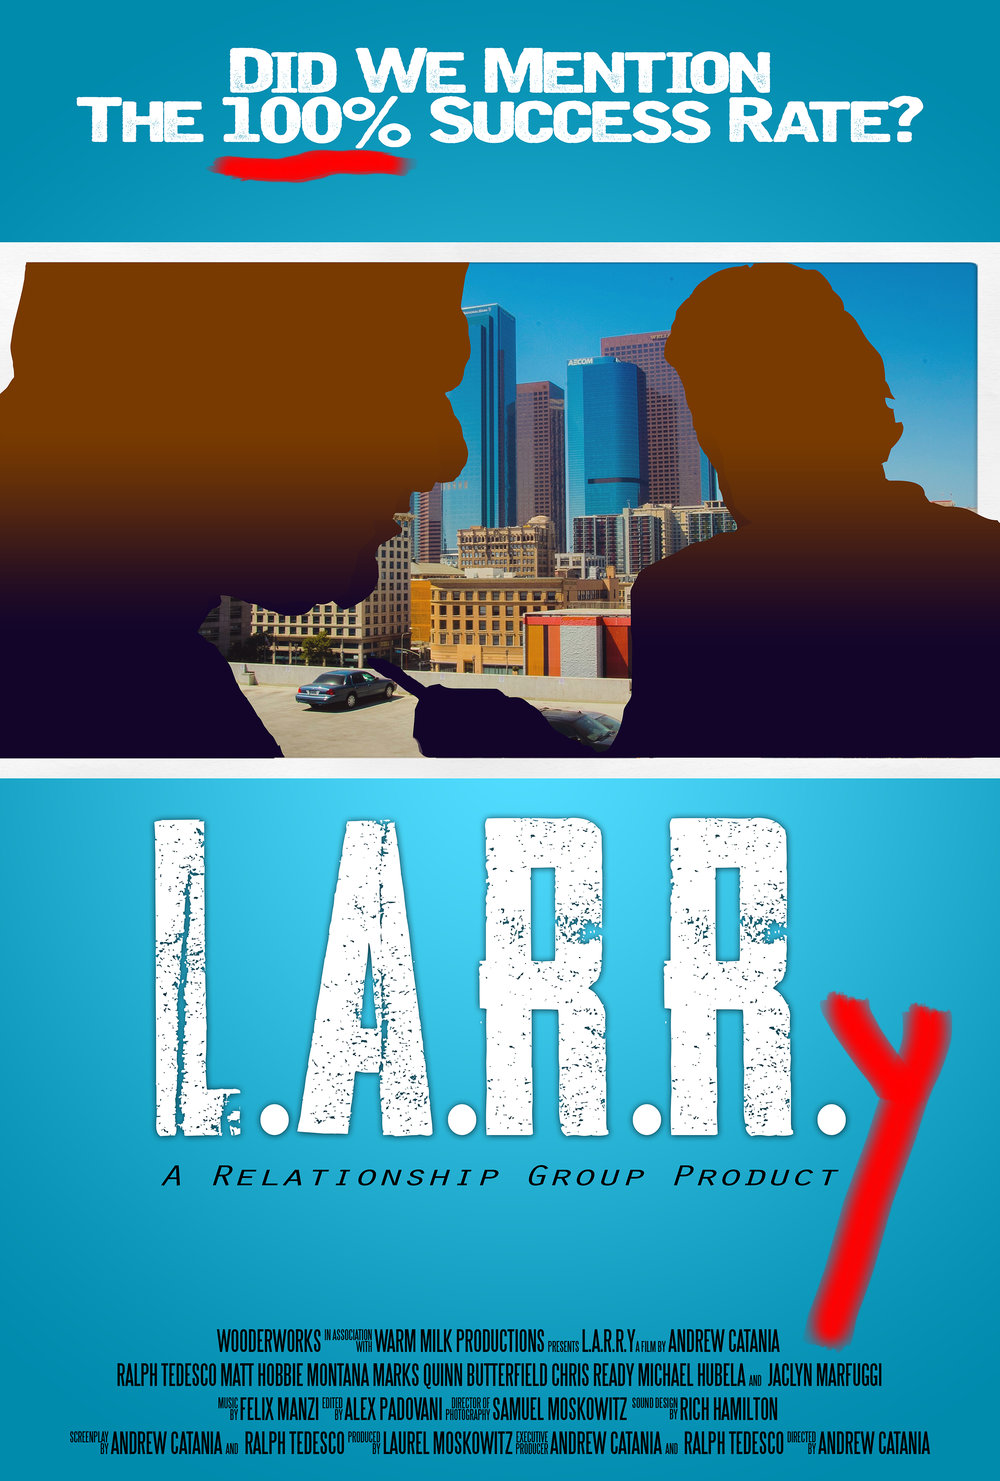 Larry Poster Small.jpg